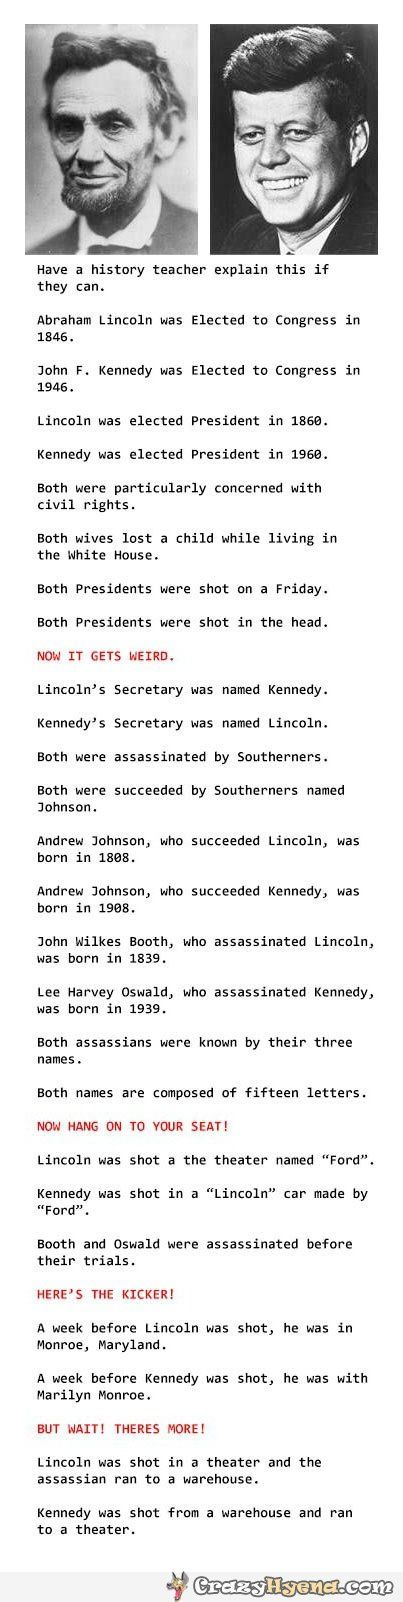 Funny coincidence history about John Kennedy and Abraham Lincoln. But Lyndon B. Johnson was president upon Kennedy's assassination, not Andrew Johnson..